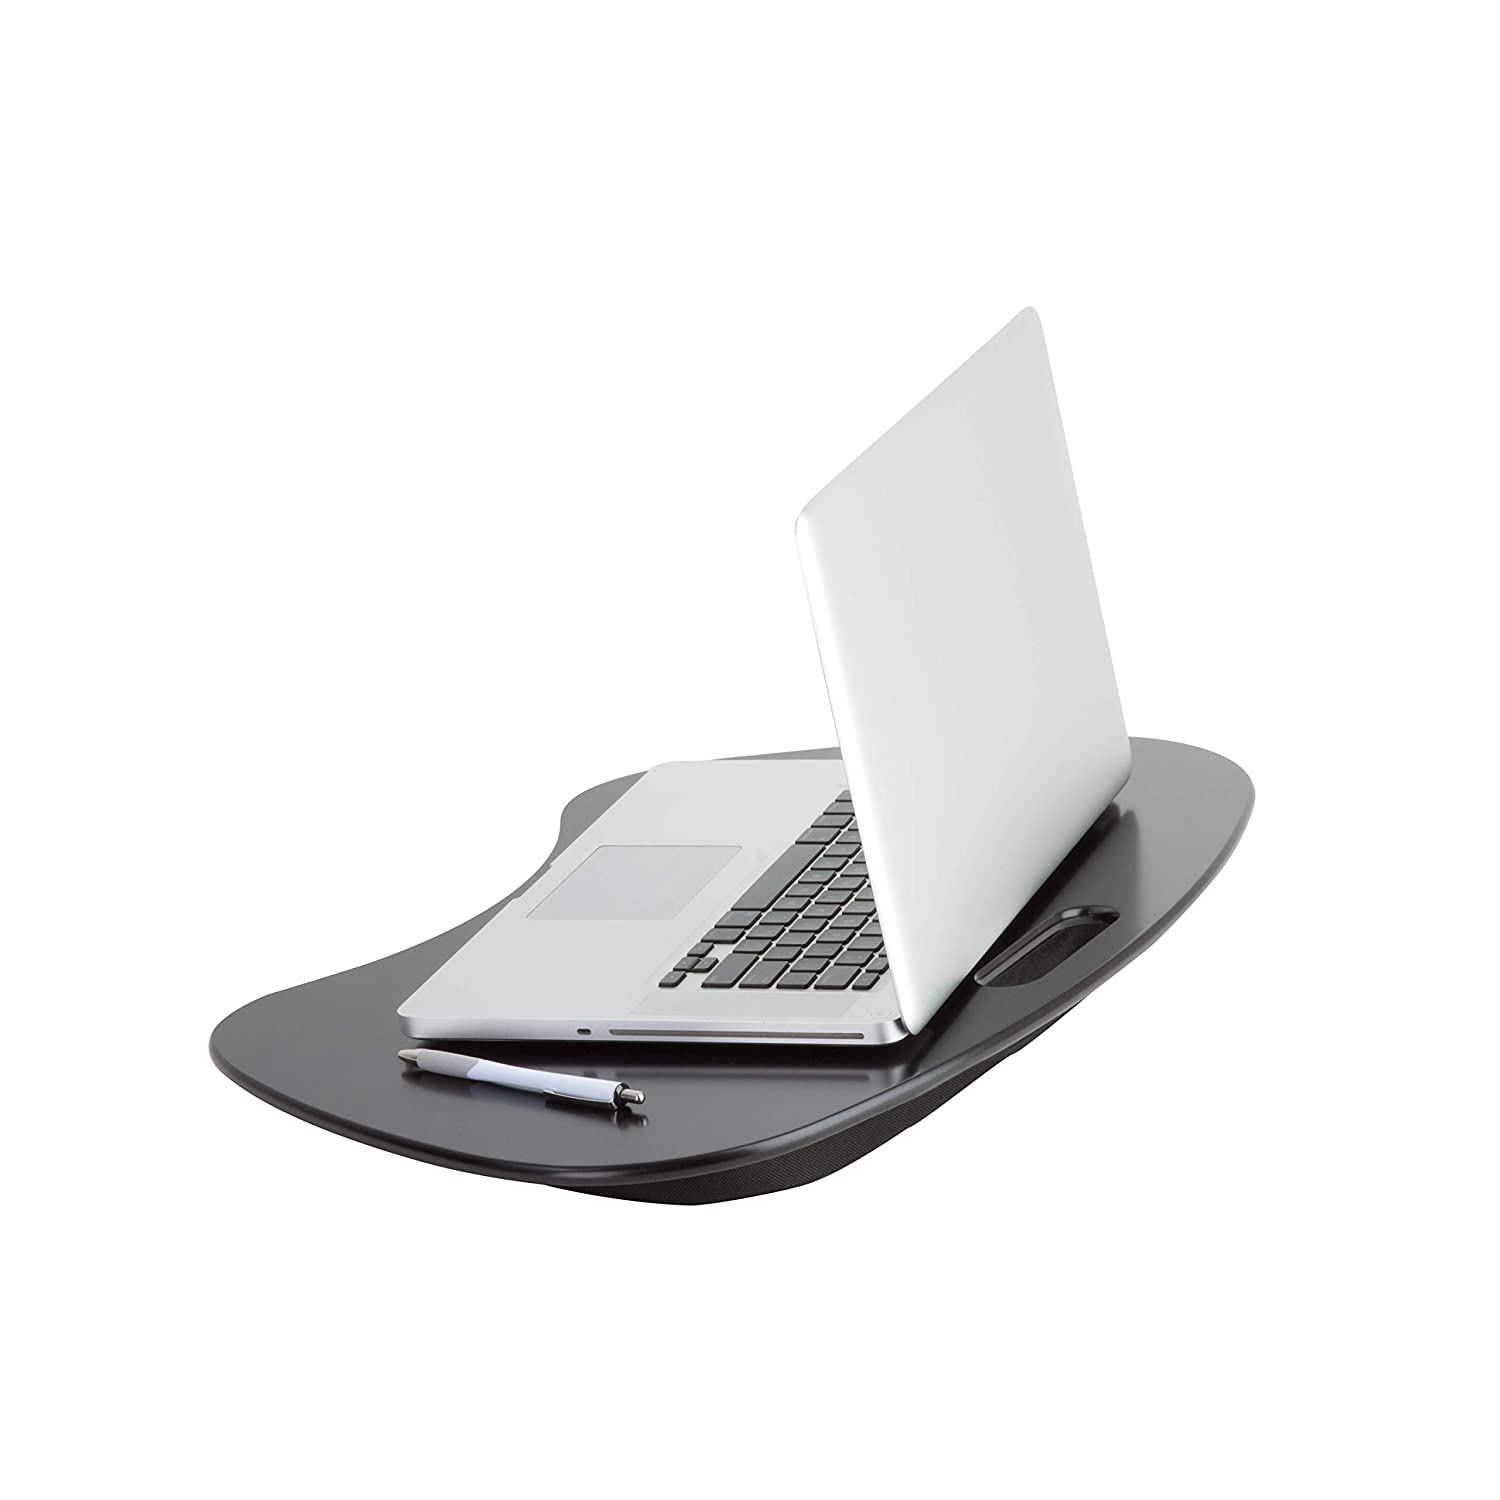 Honey-Can-Do TBL-02869 Portable Laptop Lap Desk with Handle, Black, 23 L x 16 W x 2.5 H